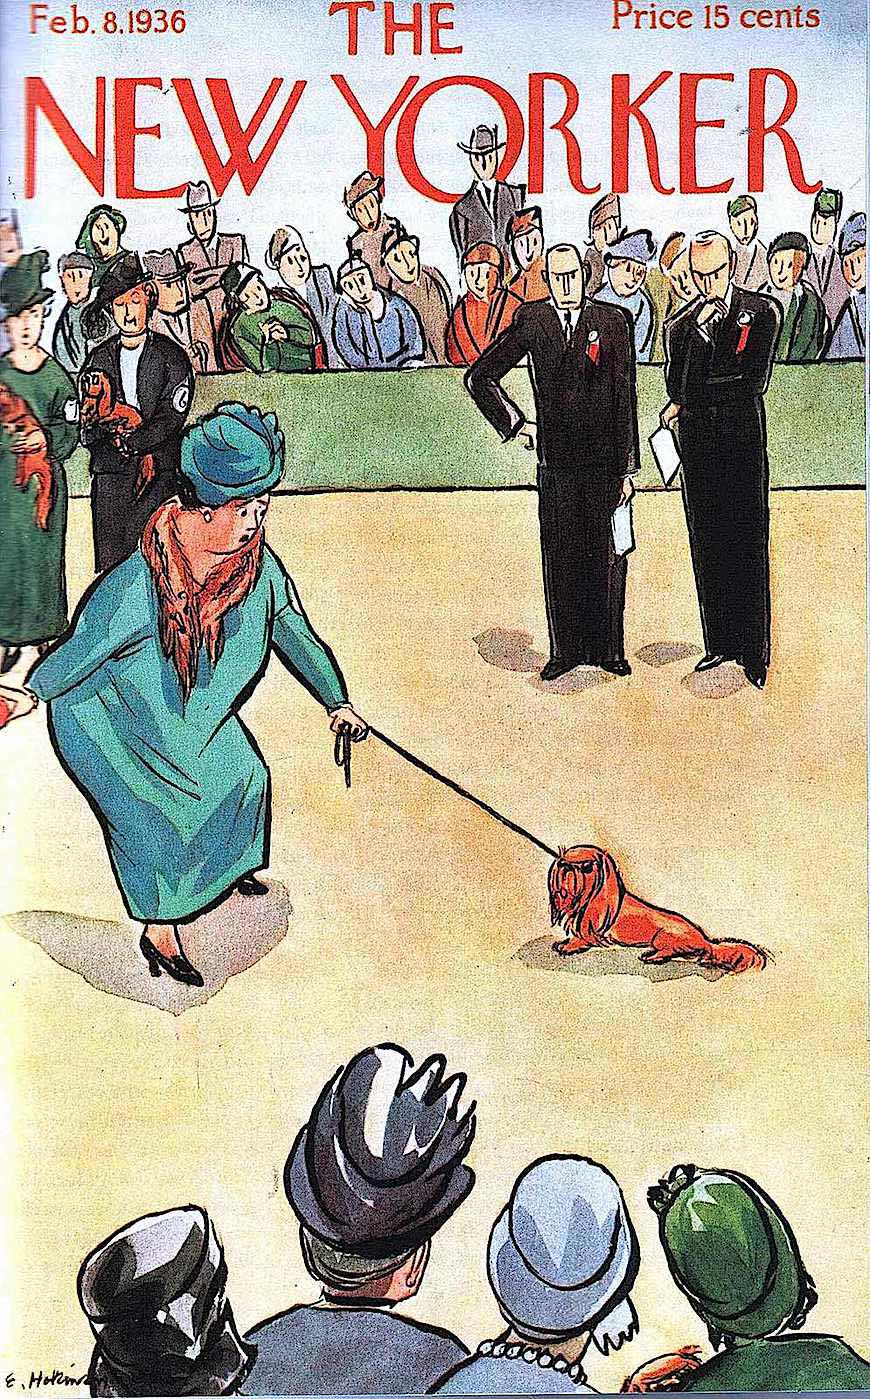 a Helen Hokinson cartoon of a dog show, New Yorker cover 1936